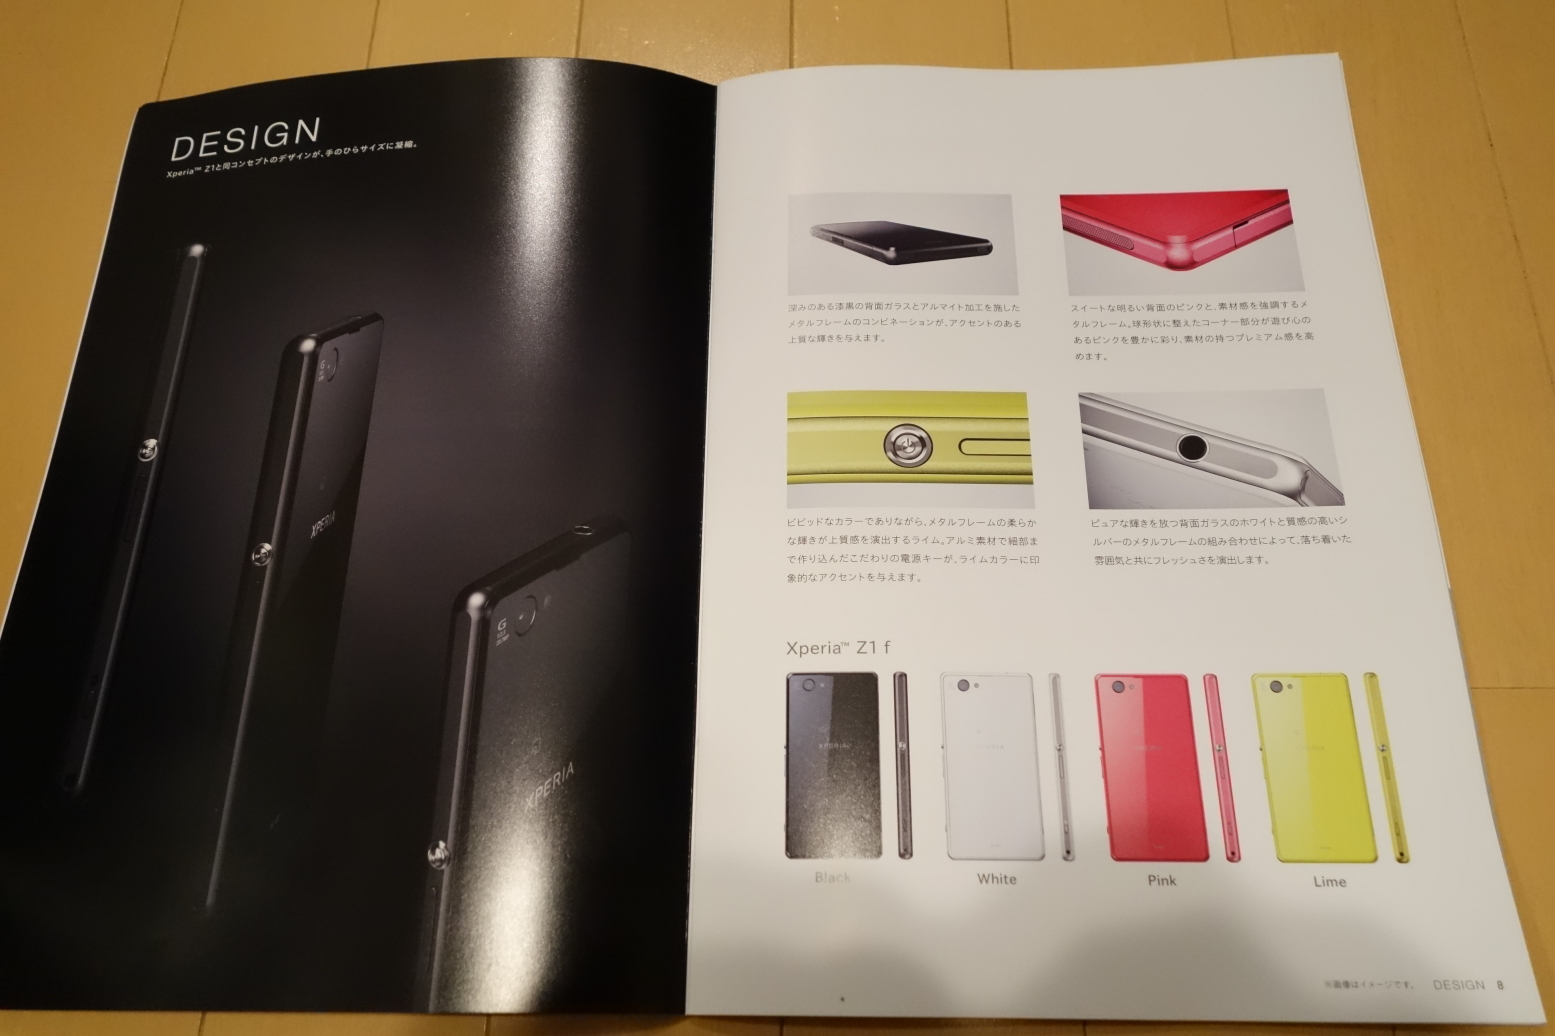 Xperia Z1 f  SO-02F Brochure leak